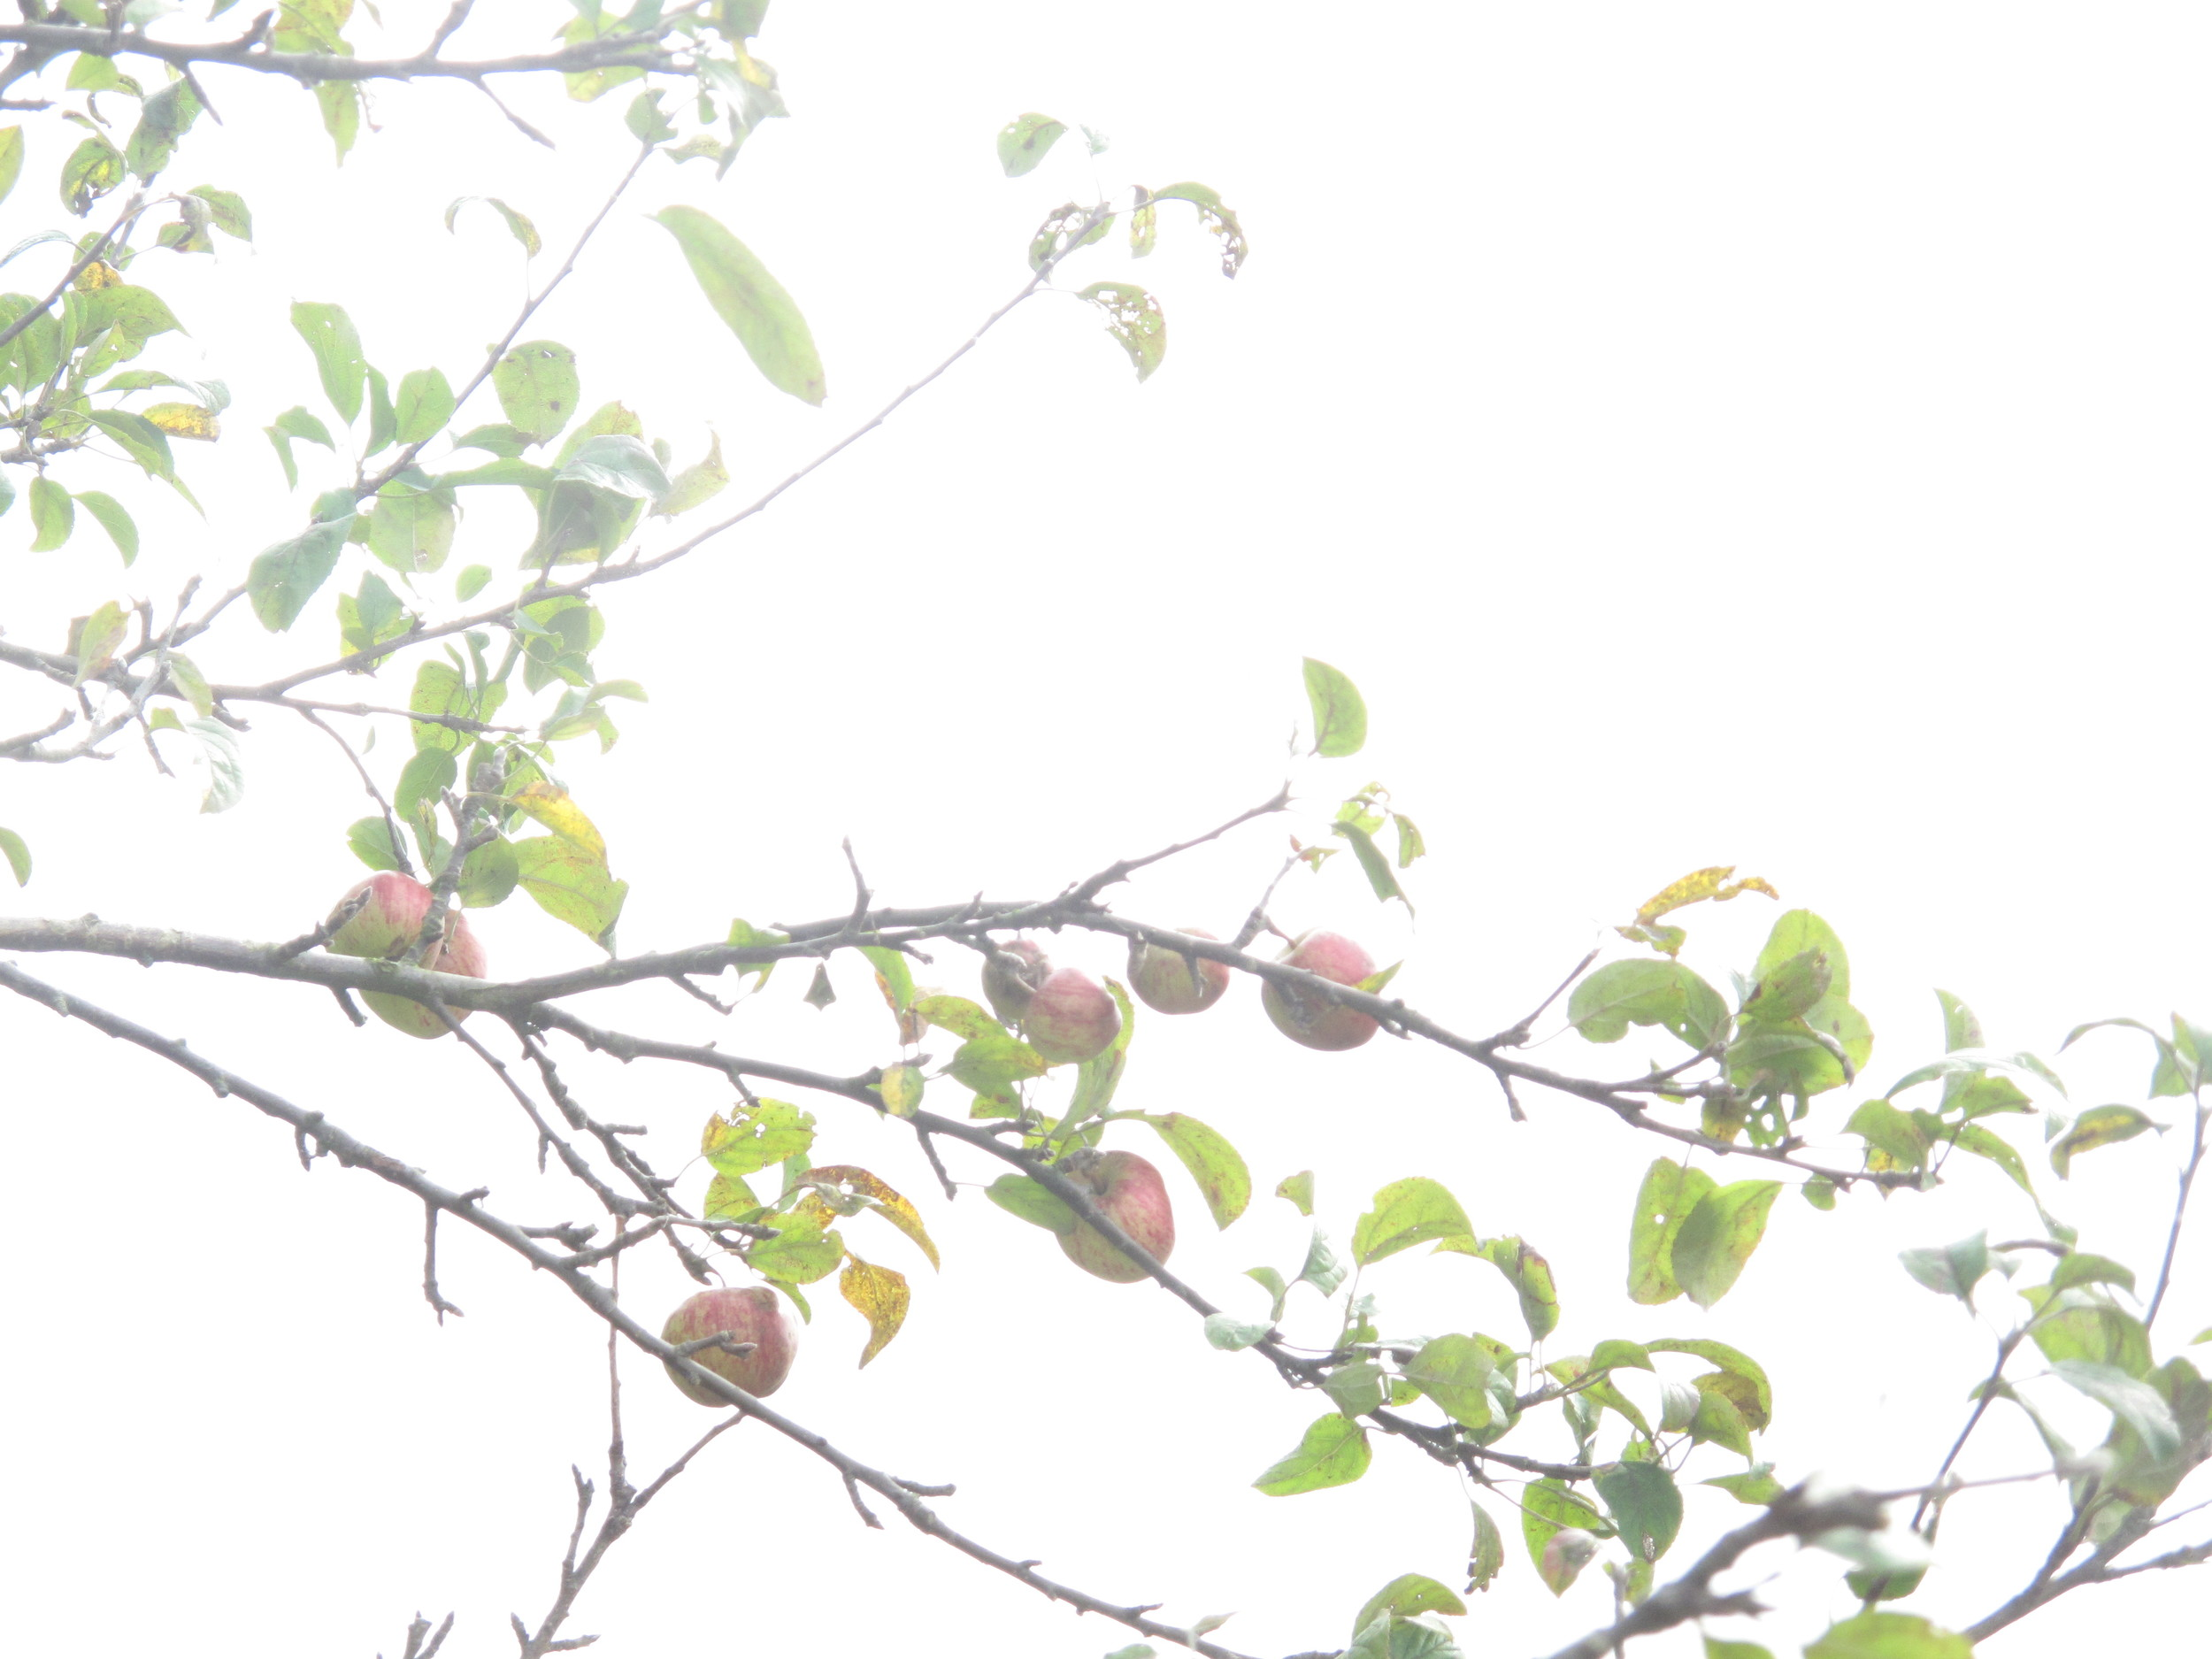 Apples in a tree.